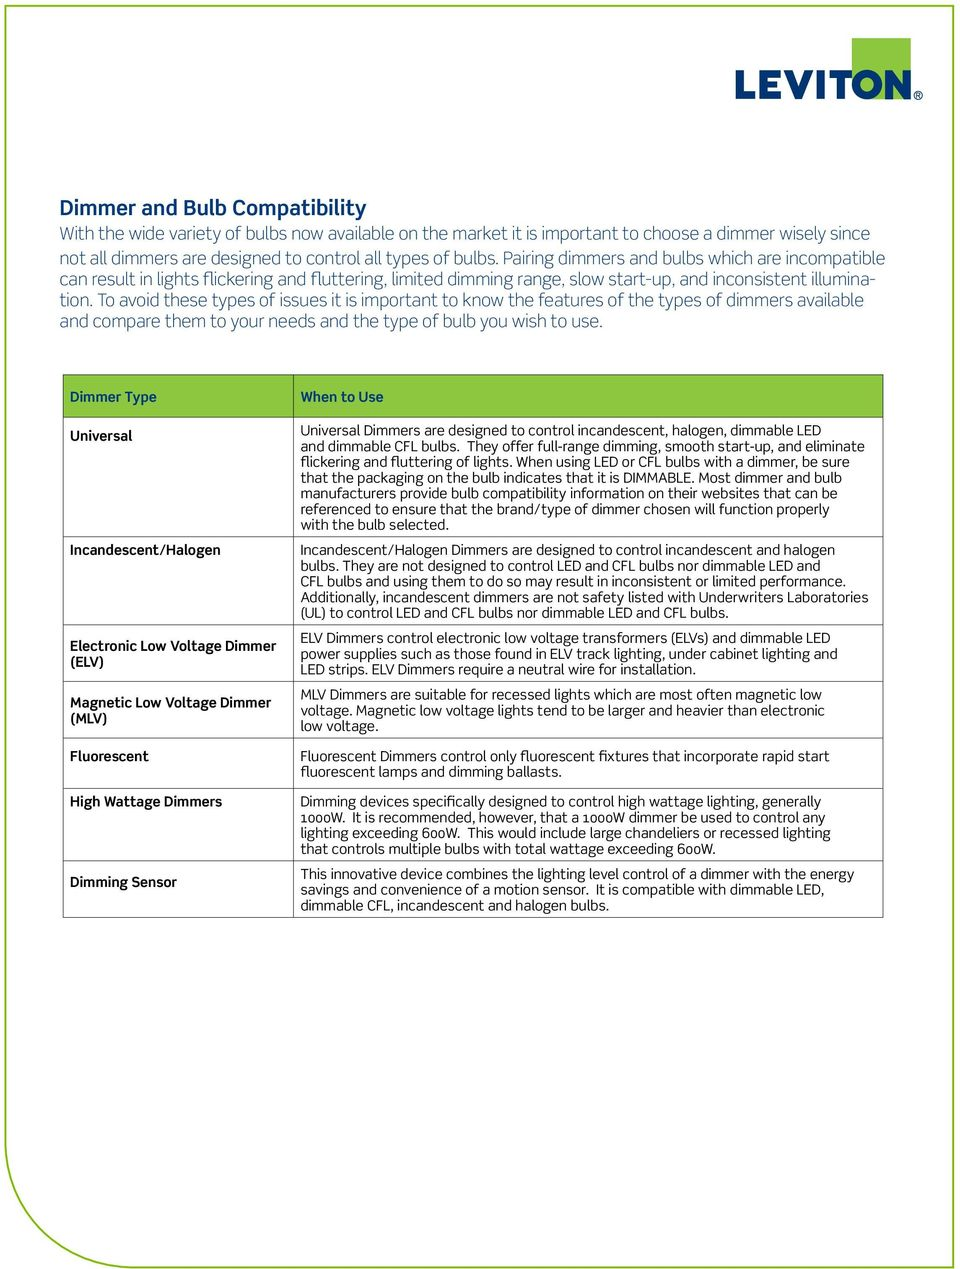 Dimmer And Bulb Compatibility Pdf Dimmable Electronic Ballast Circuit Dimming Feature Included To Avoid These Types Of Issues It Is Important Know The Features 3 Wiring